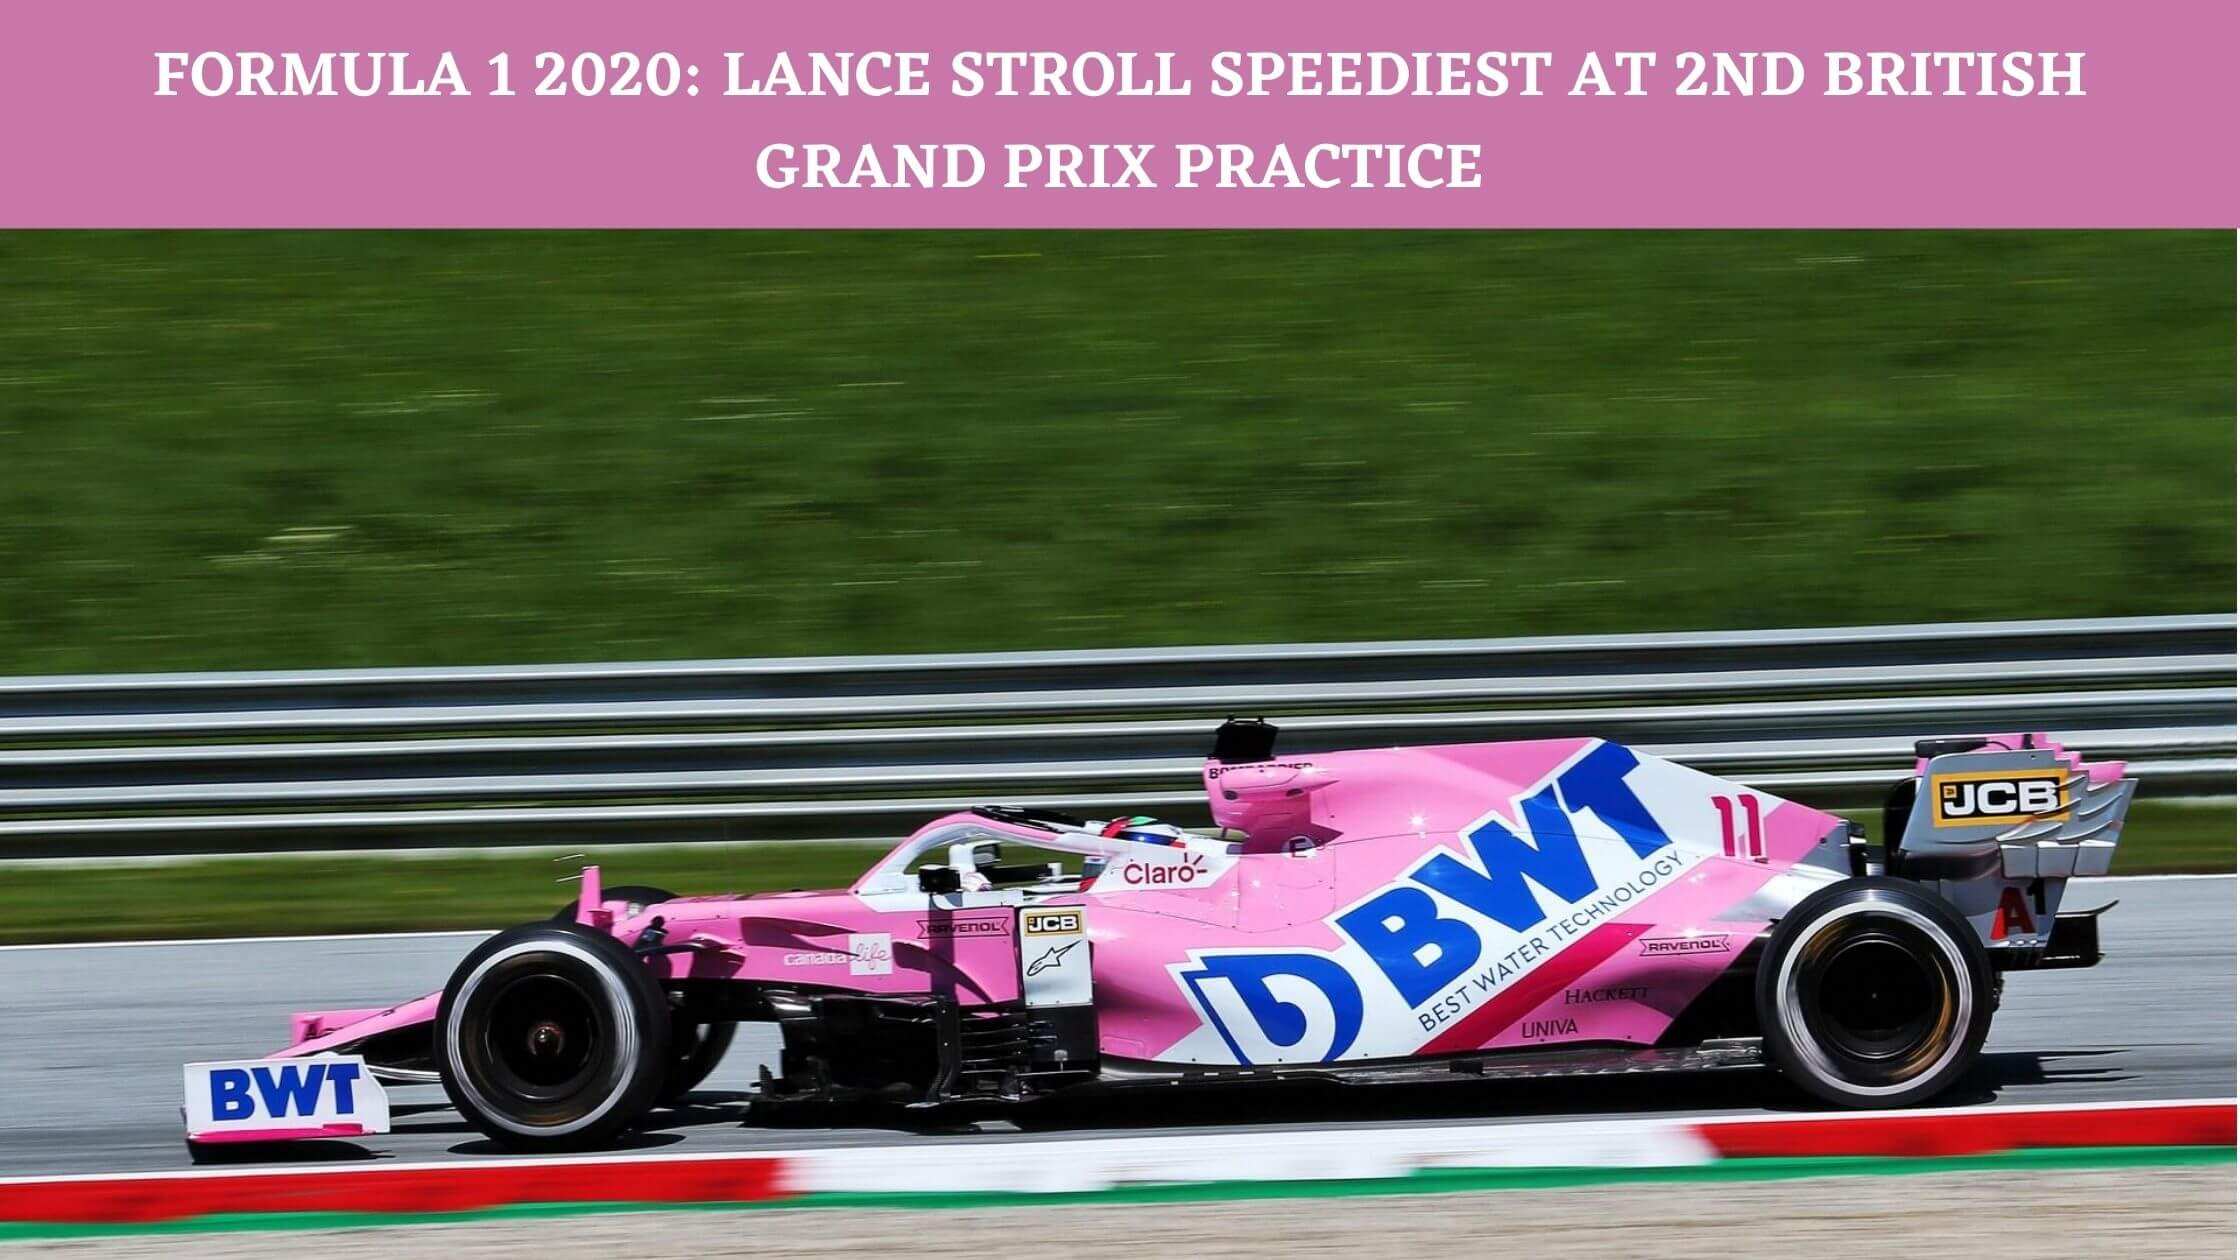 Lance Stroll speediest at second British Grand Prix practice